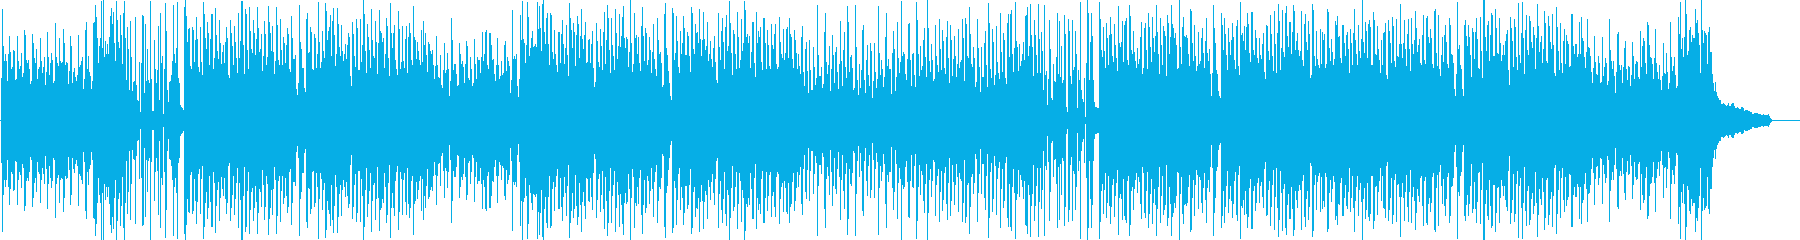 Whistling Melody & Happy Positive!'s reproduced waveform